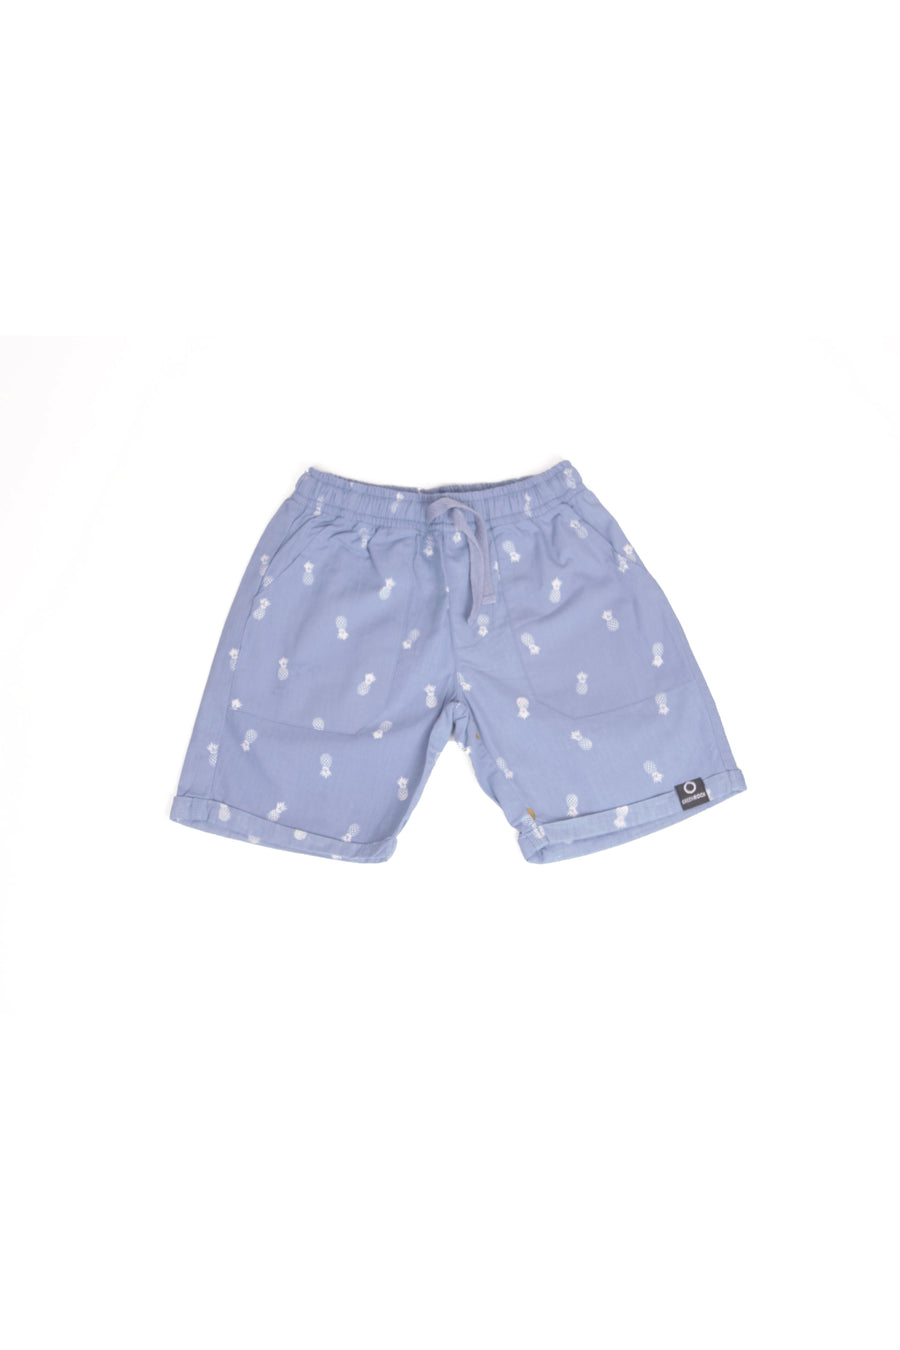 Short Kids Pineapple Medium Blue - Greenrock Indonesia